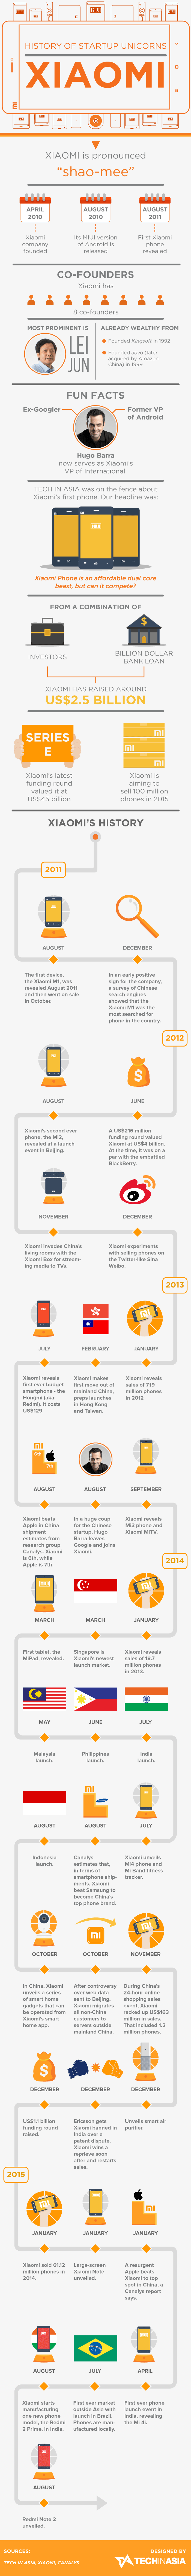 History-of-Unicorn-Xiaomi-1.5